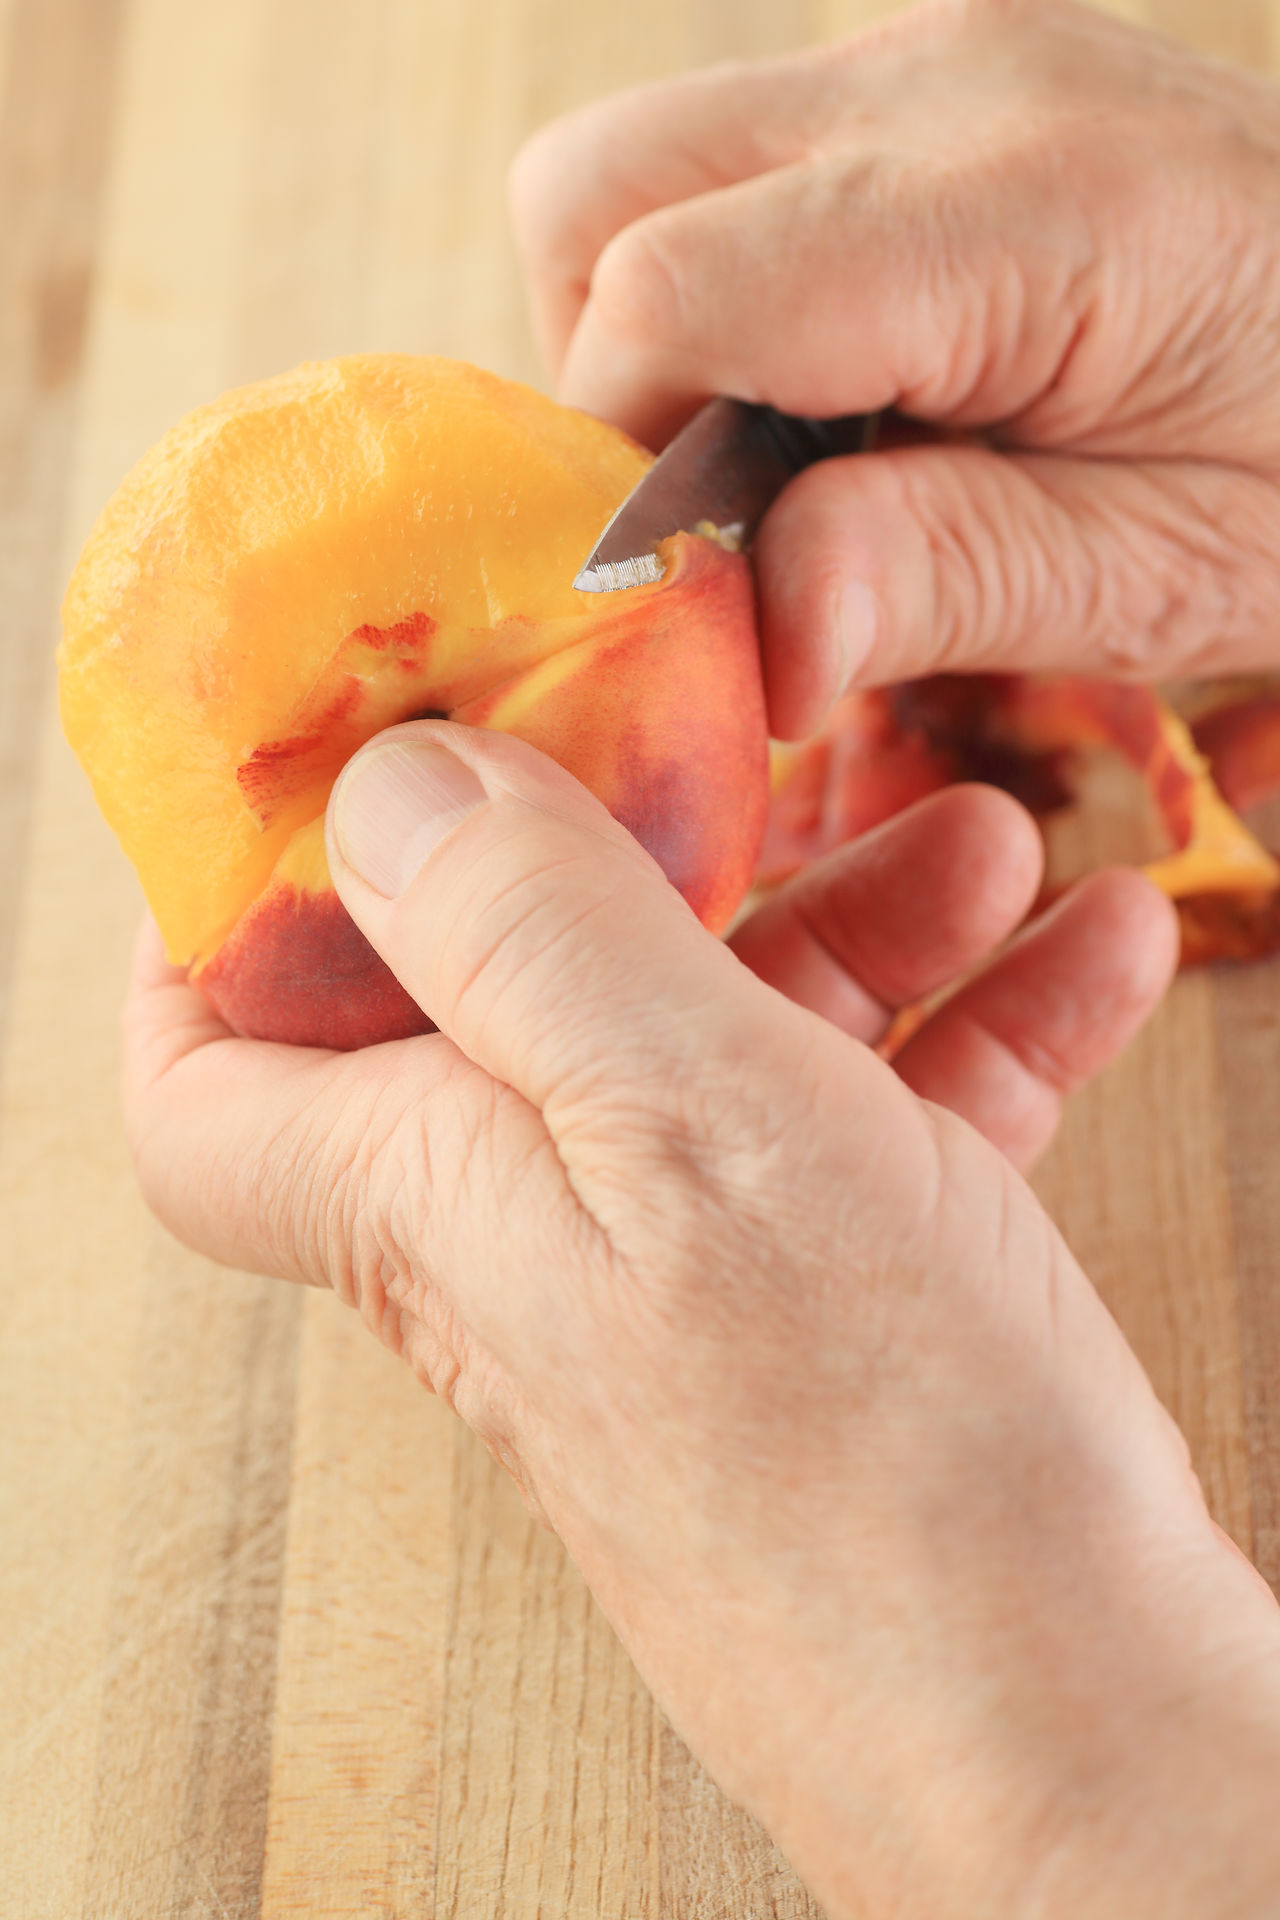 Senior removes peel from peach Close-up Cutting Board Fingers Food Food Preparation Fresh Fruit Hands Healthy Eating Holding Juicy Man Natural Light One Person Orange Color Overhead Peach POV Snack Sweet Textures Using Knife Vertical Wood Surface